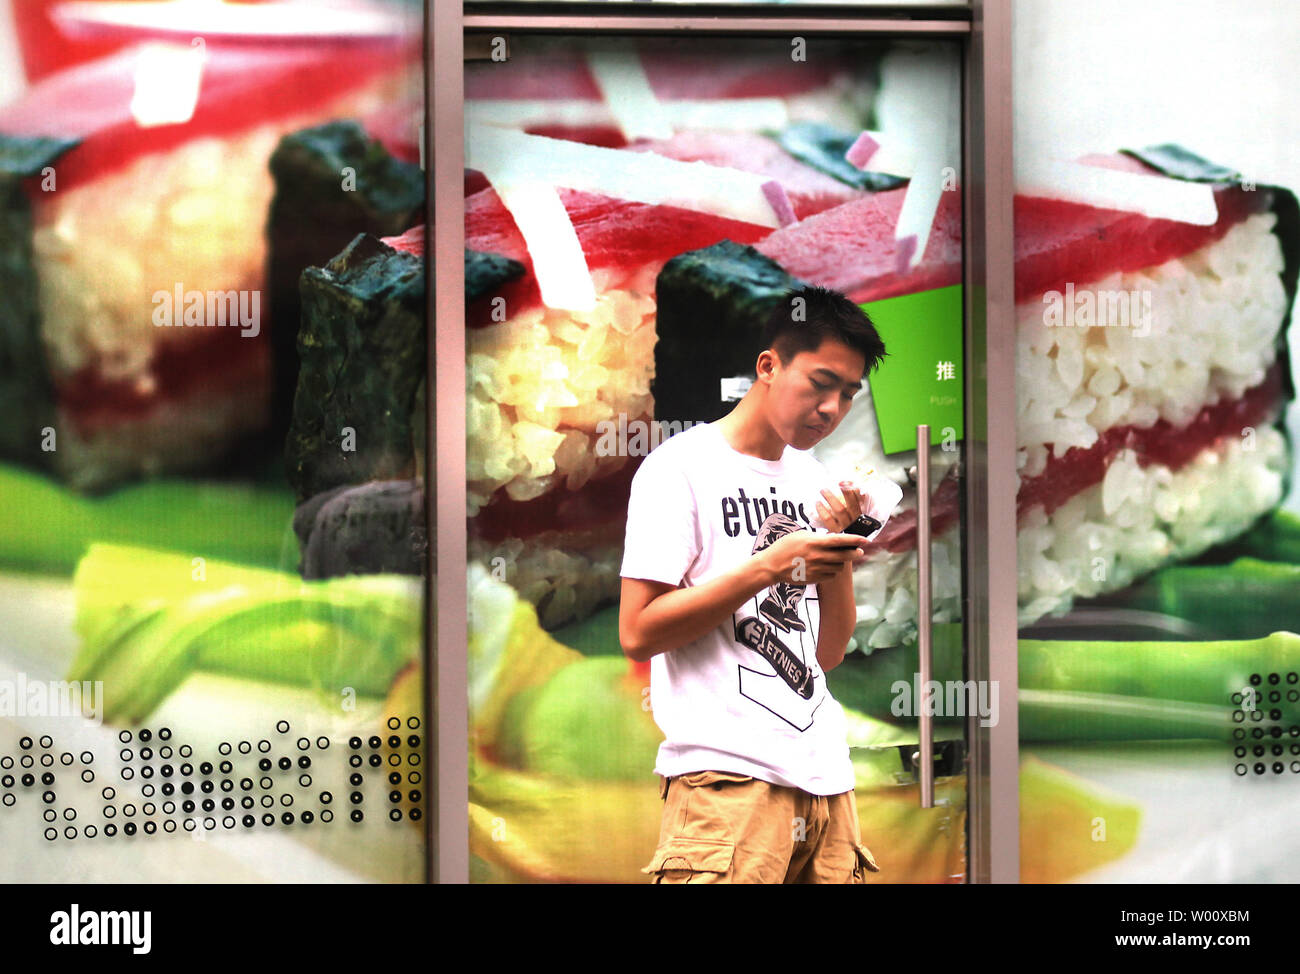 A Chinese man eats a sandwich while texting outside a